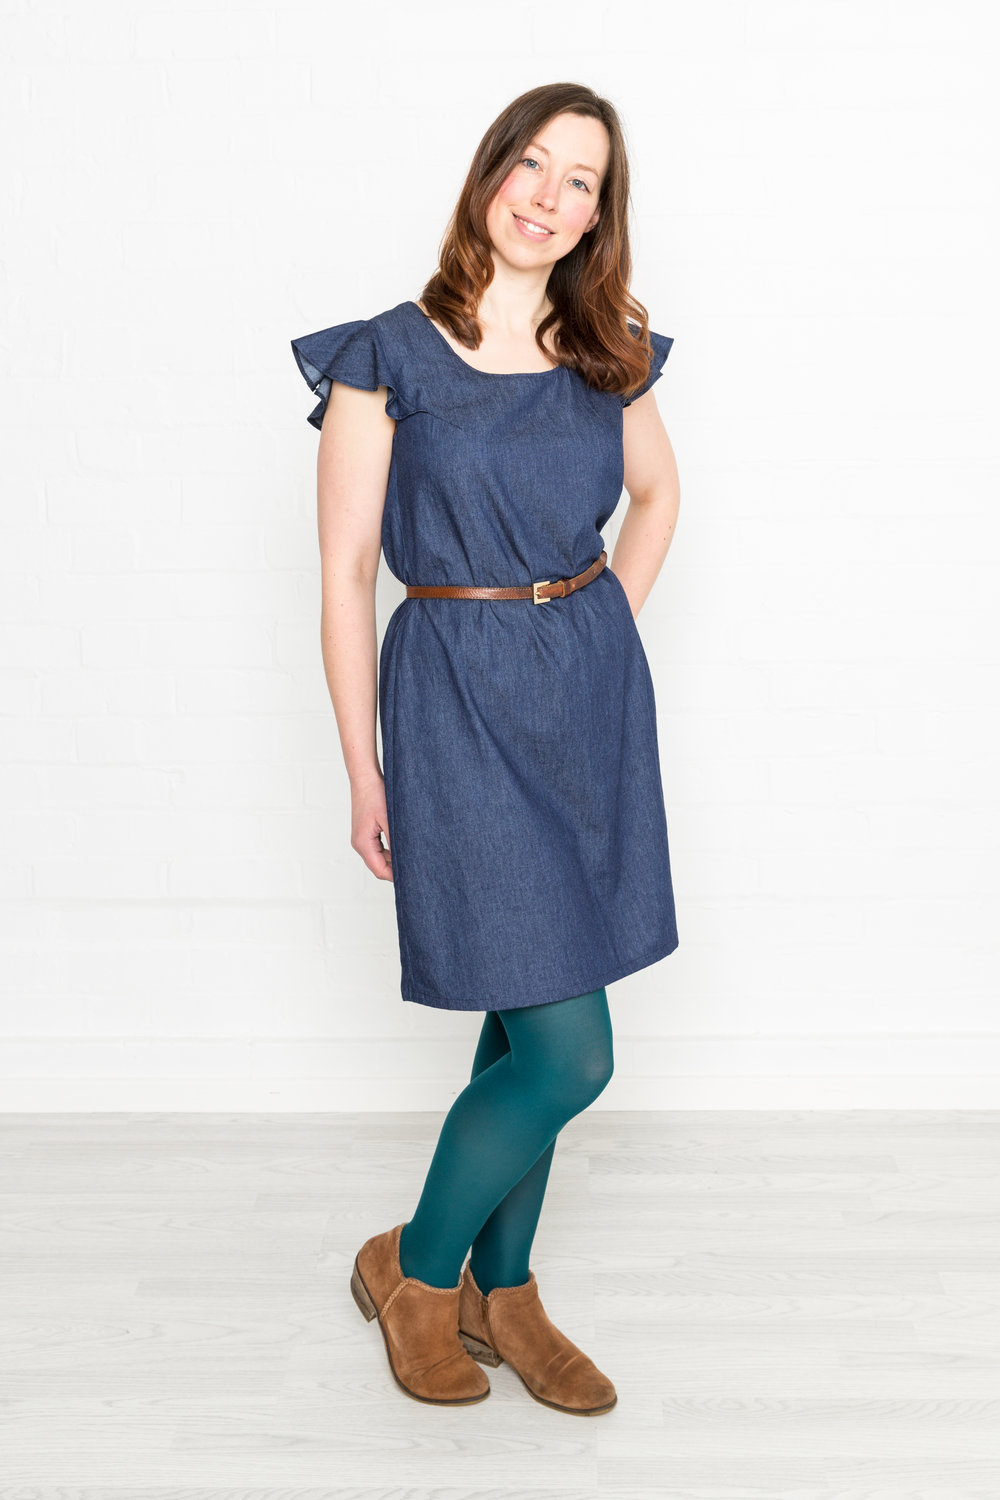 Introducing the Everyday Amazing Shift Dress and Top Pattern with ...